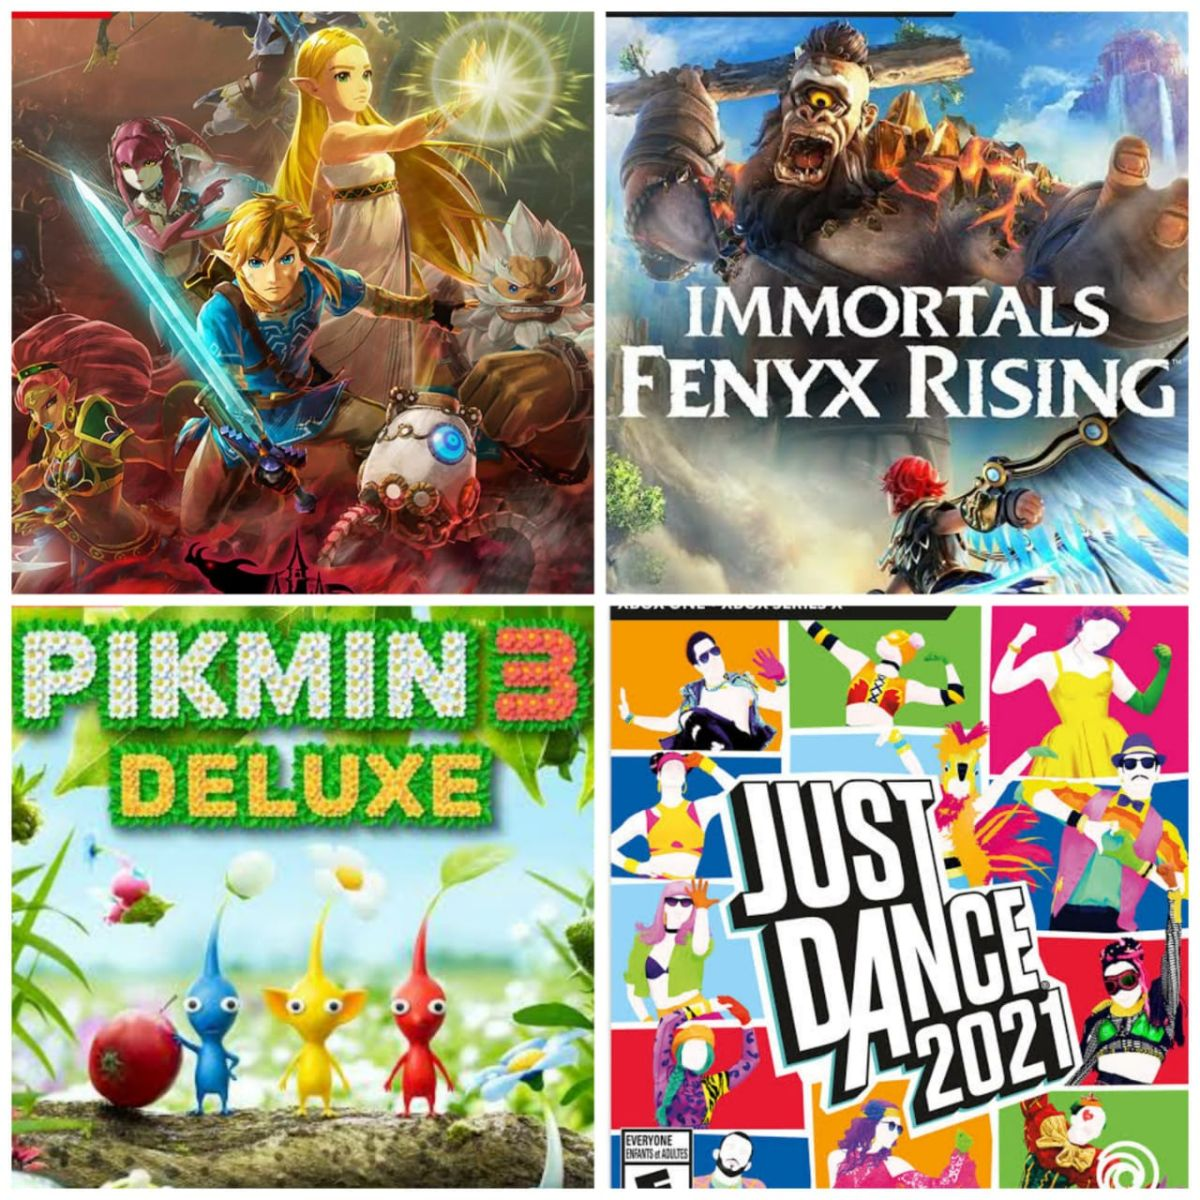 Review: Immortals: Fenyx Rising, Pikmin 3 Deluxe Edition, Zelda Hyrule Warriors Age of Calamity and Just Dance 2021 | The State